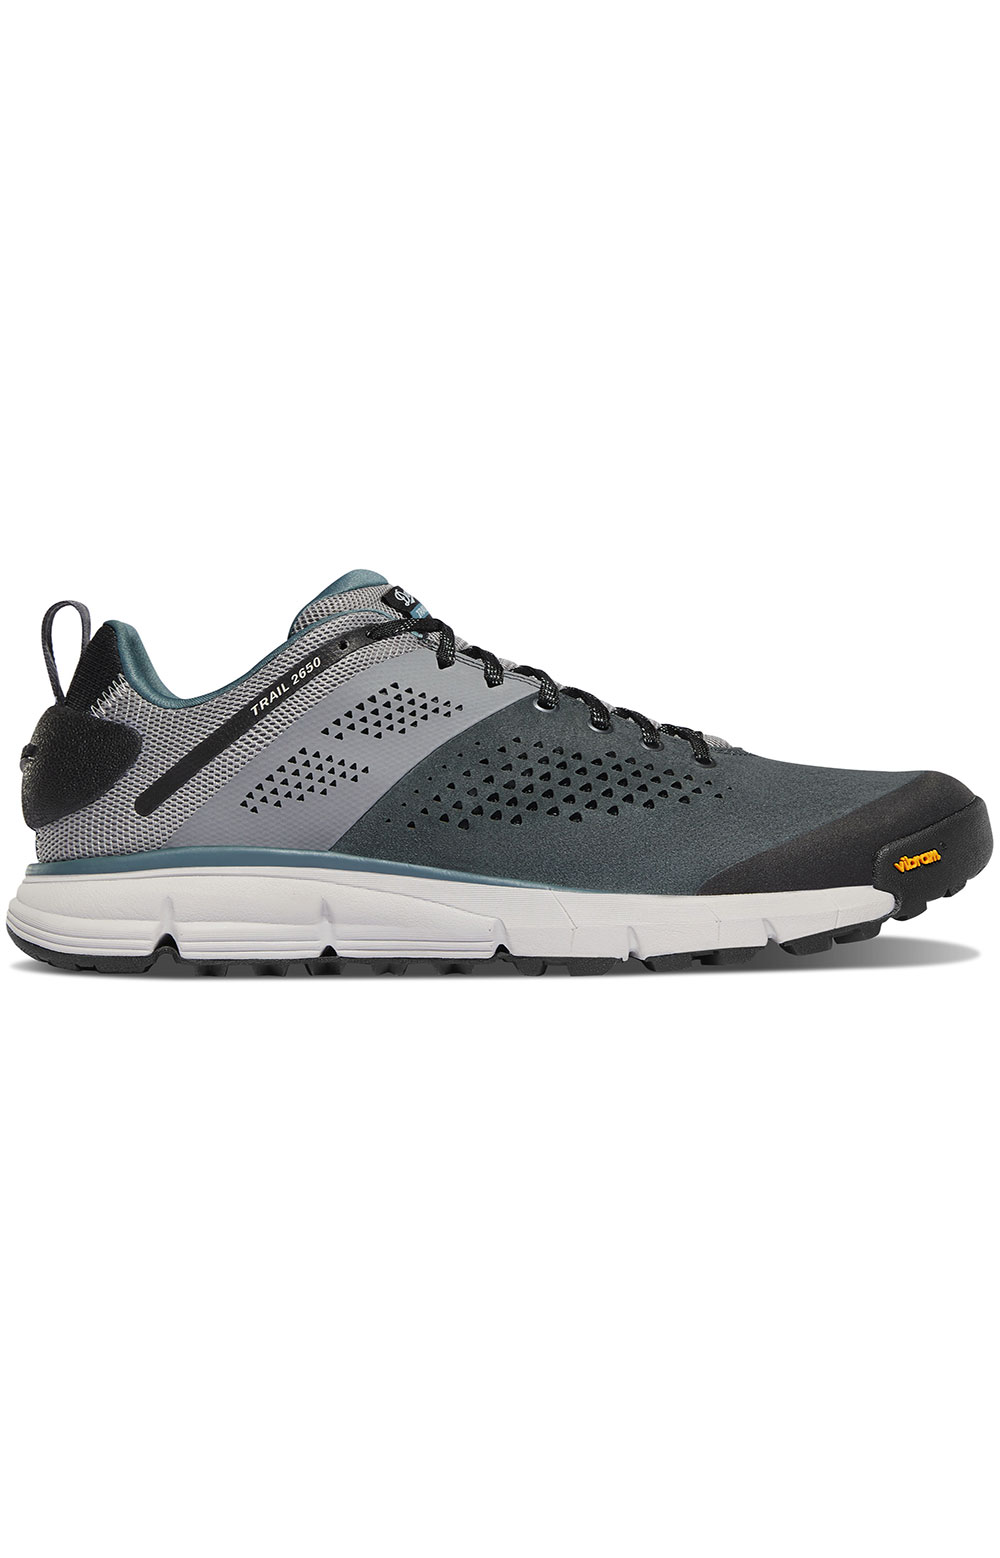 (61282) Trail 2650 Shoes - Charcoal/Goblin Blue 4